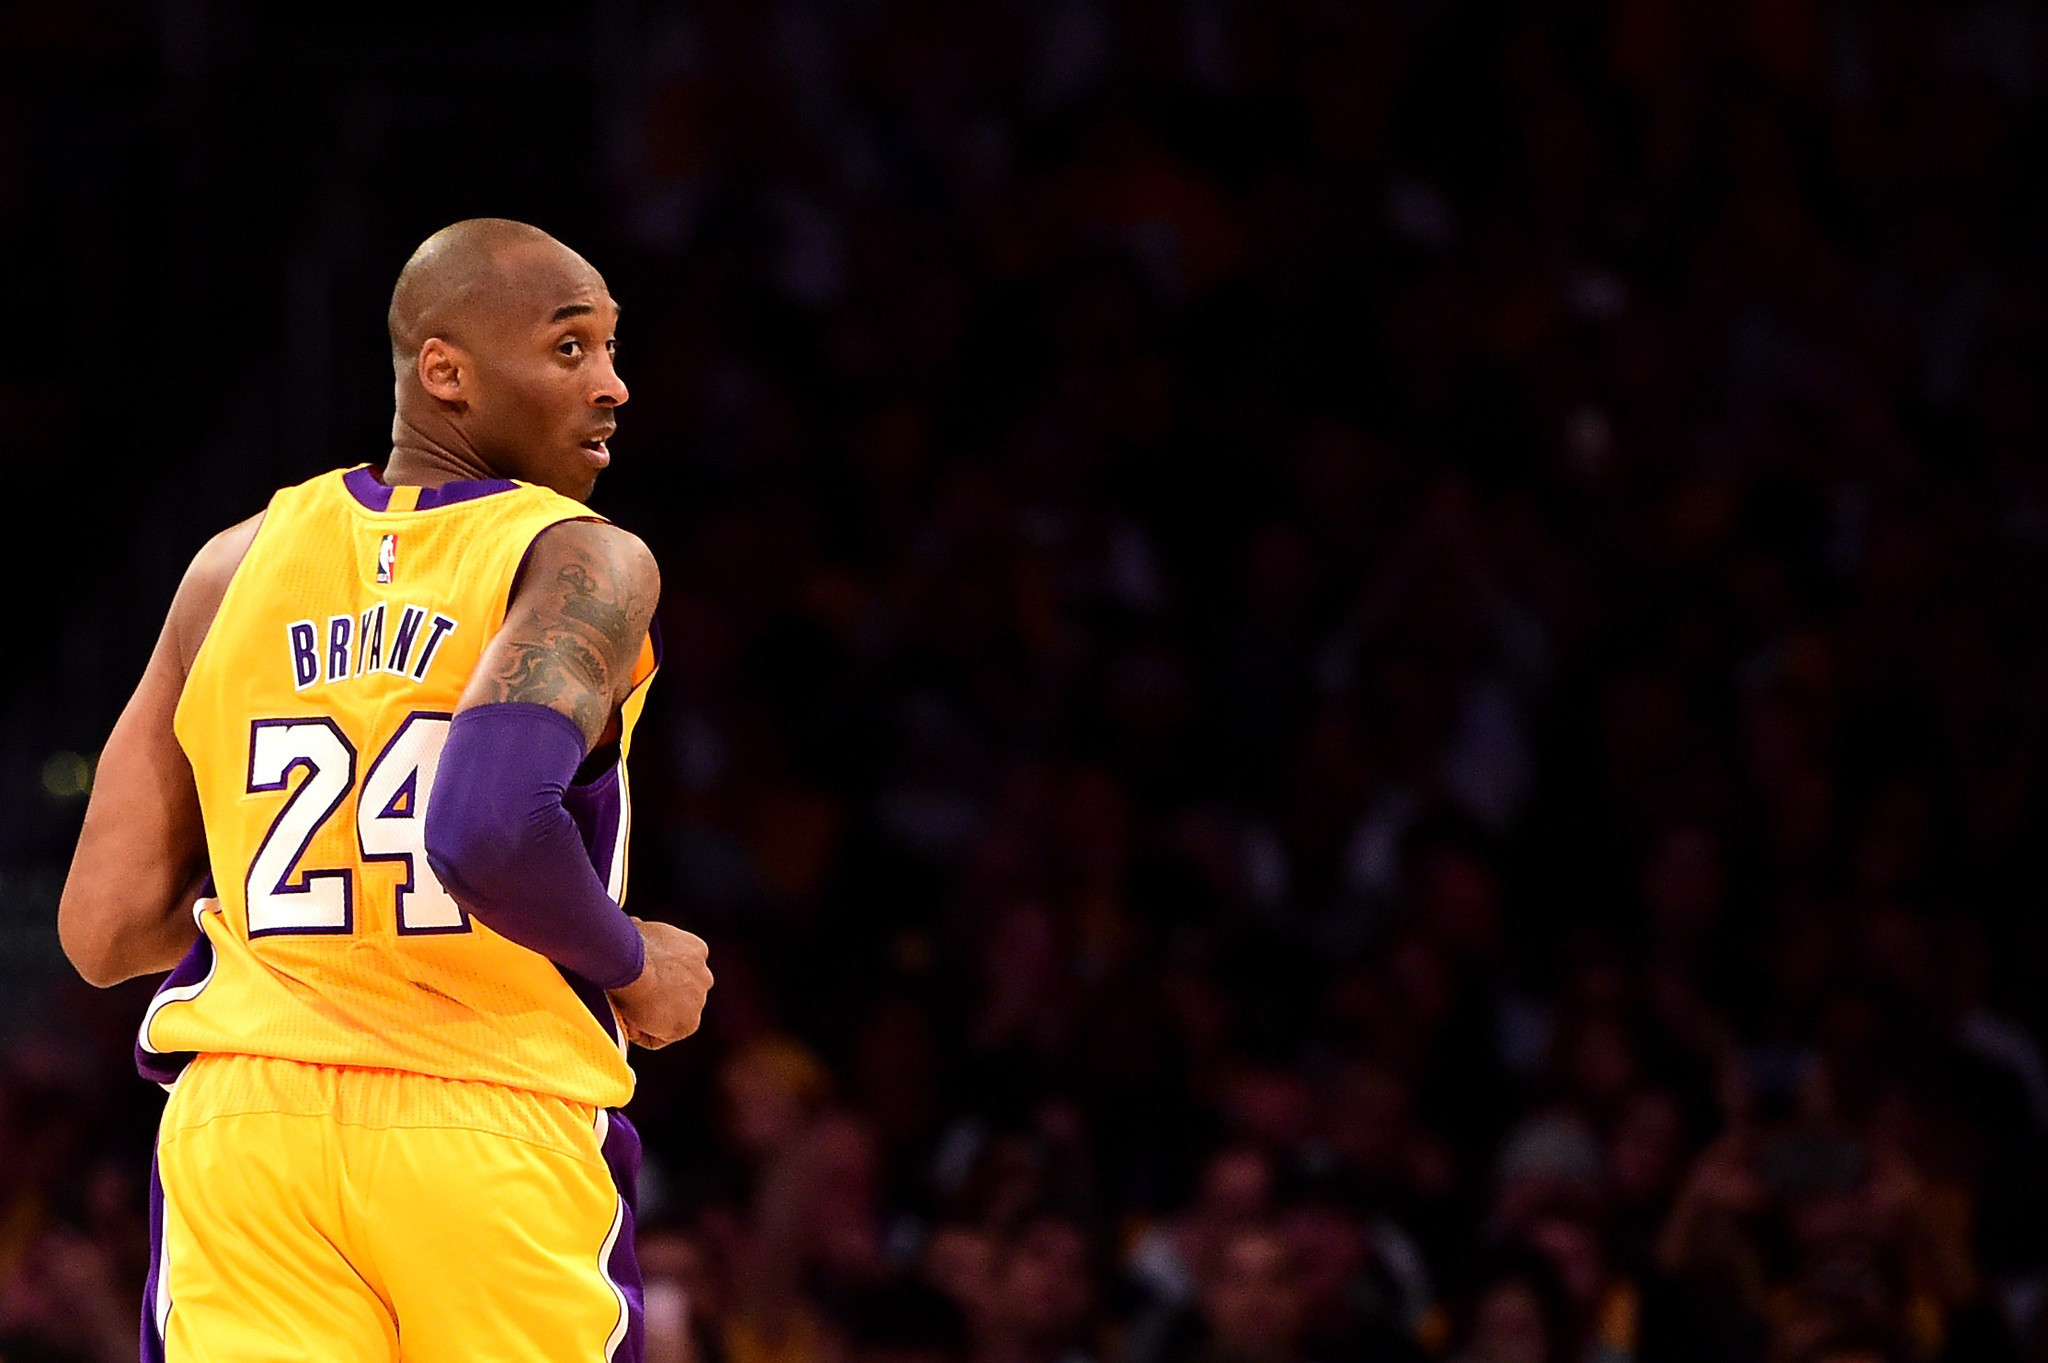 Kobe Bryant scores 60 points in unbelievable farewell victory